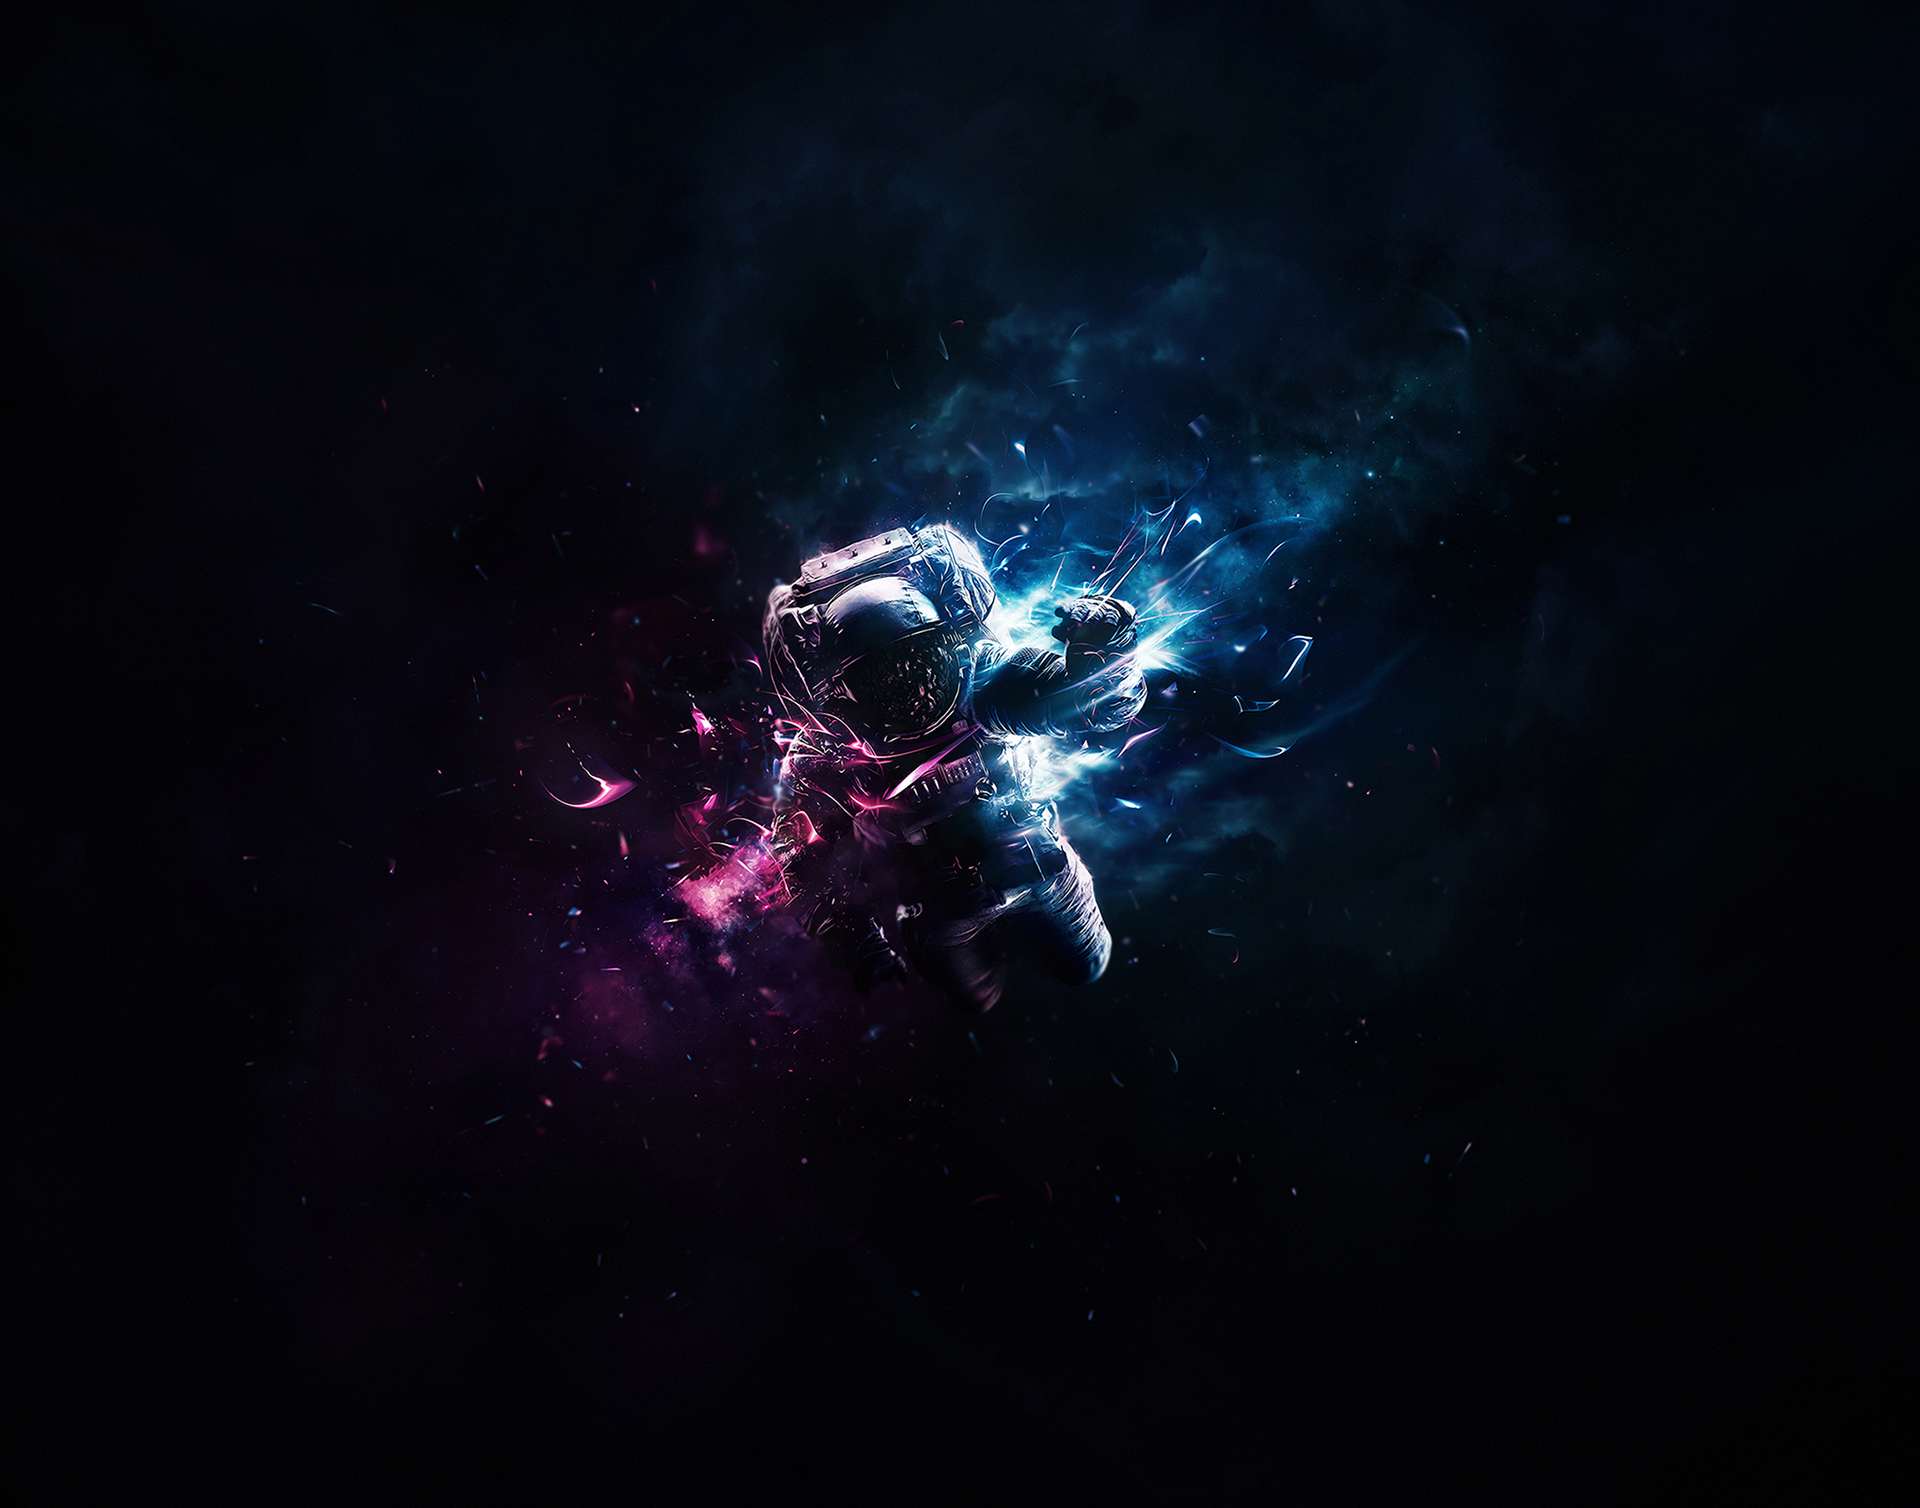 space-inspired-photoshop-manipulations-astronaut